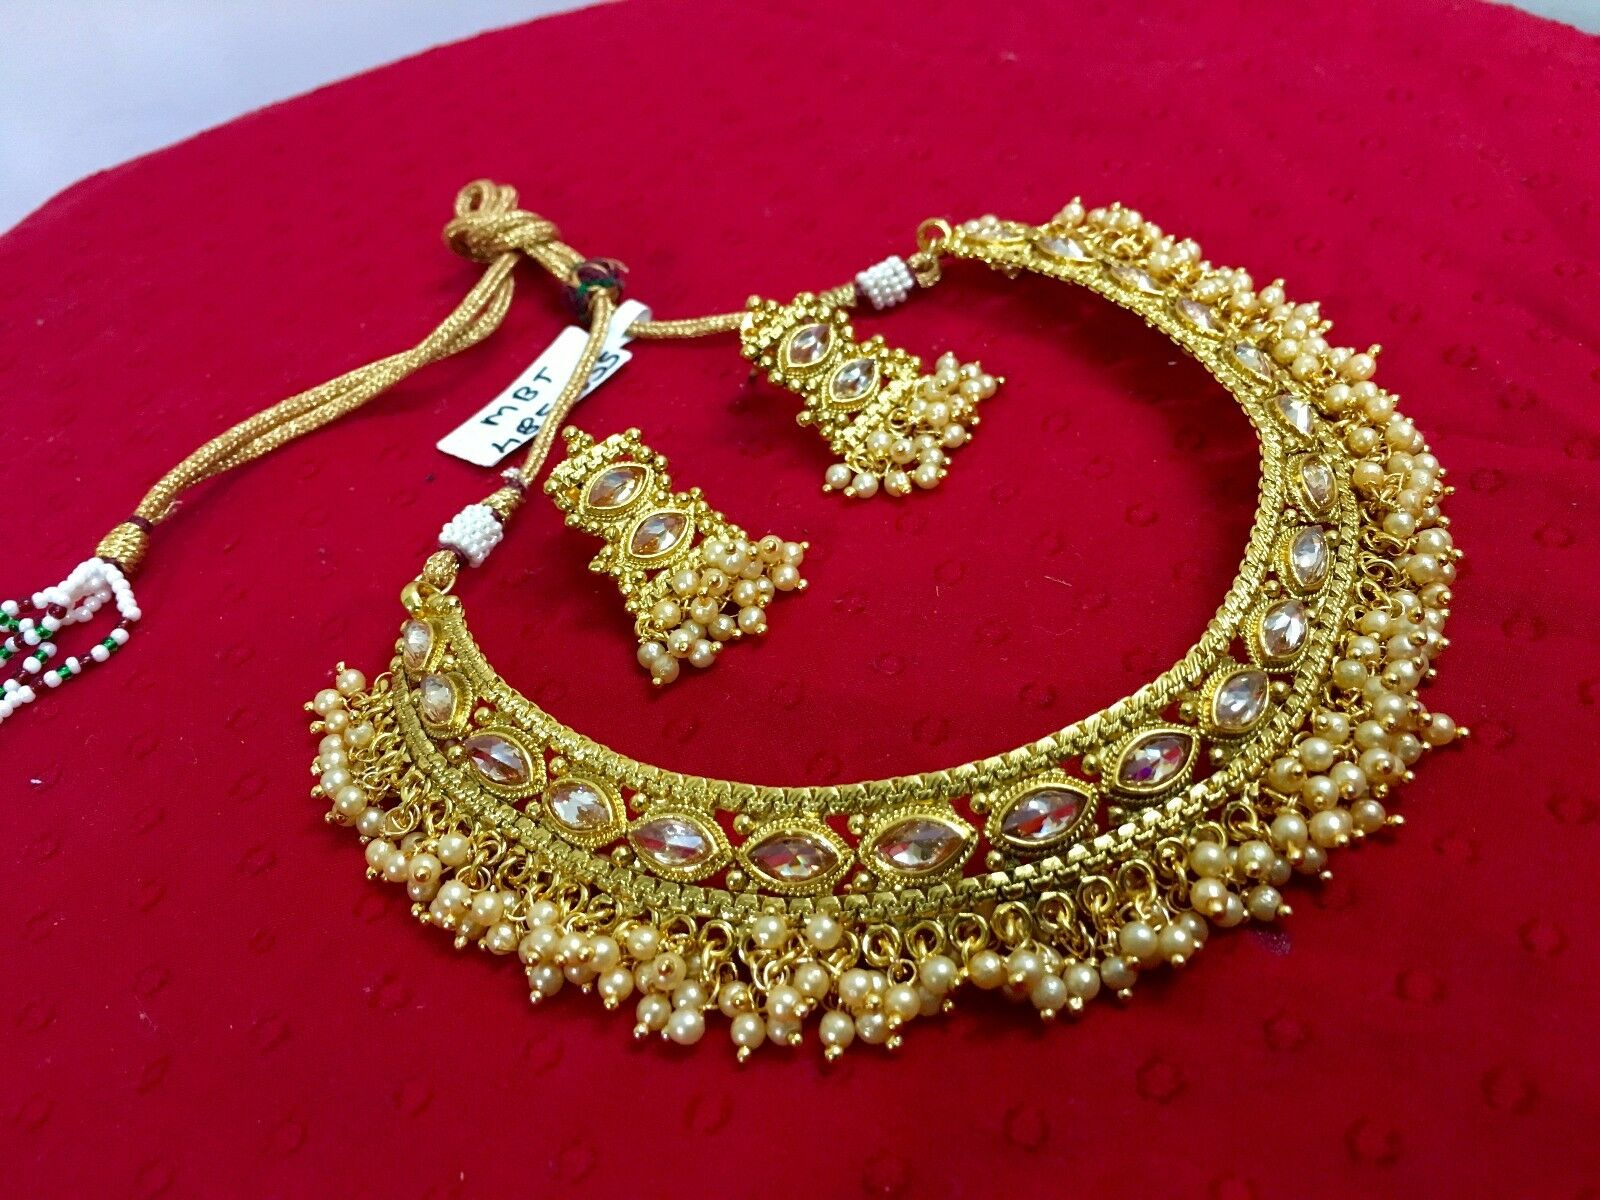 online the usa raas products desi indian oxidized wedding global jewelry navratri fashion jewellery